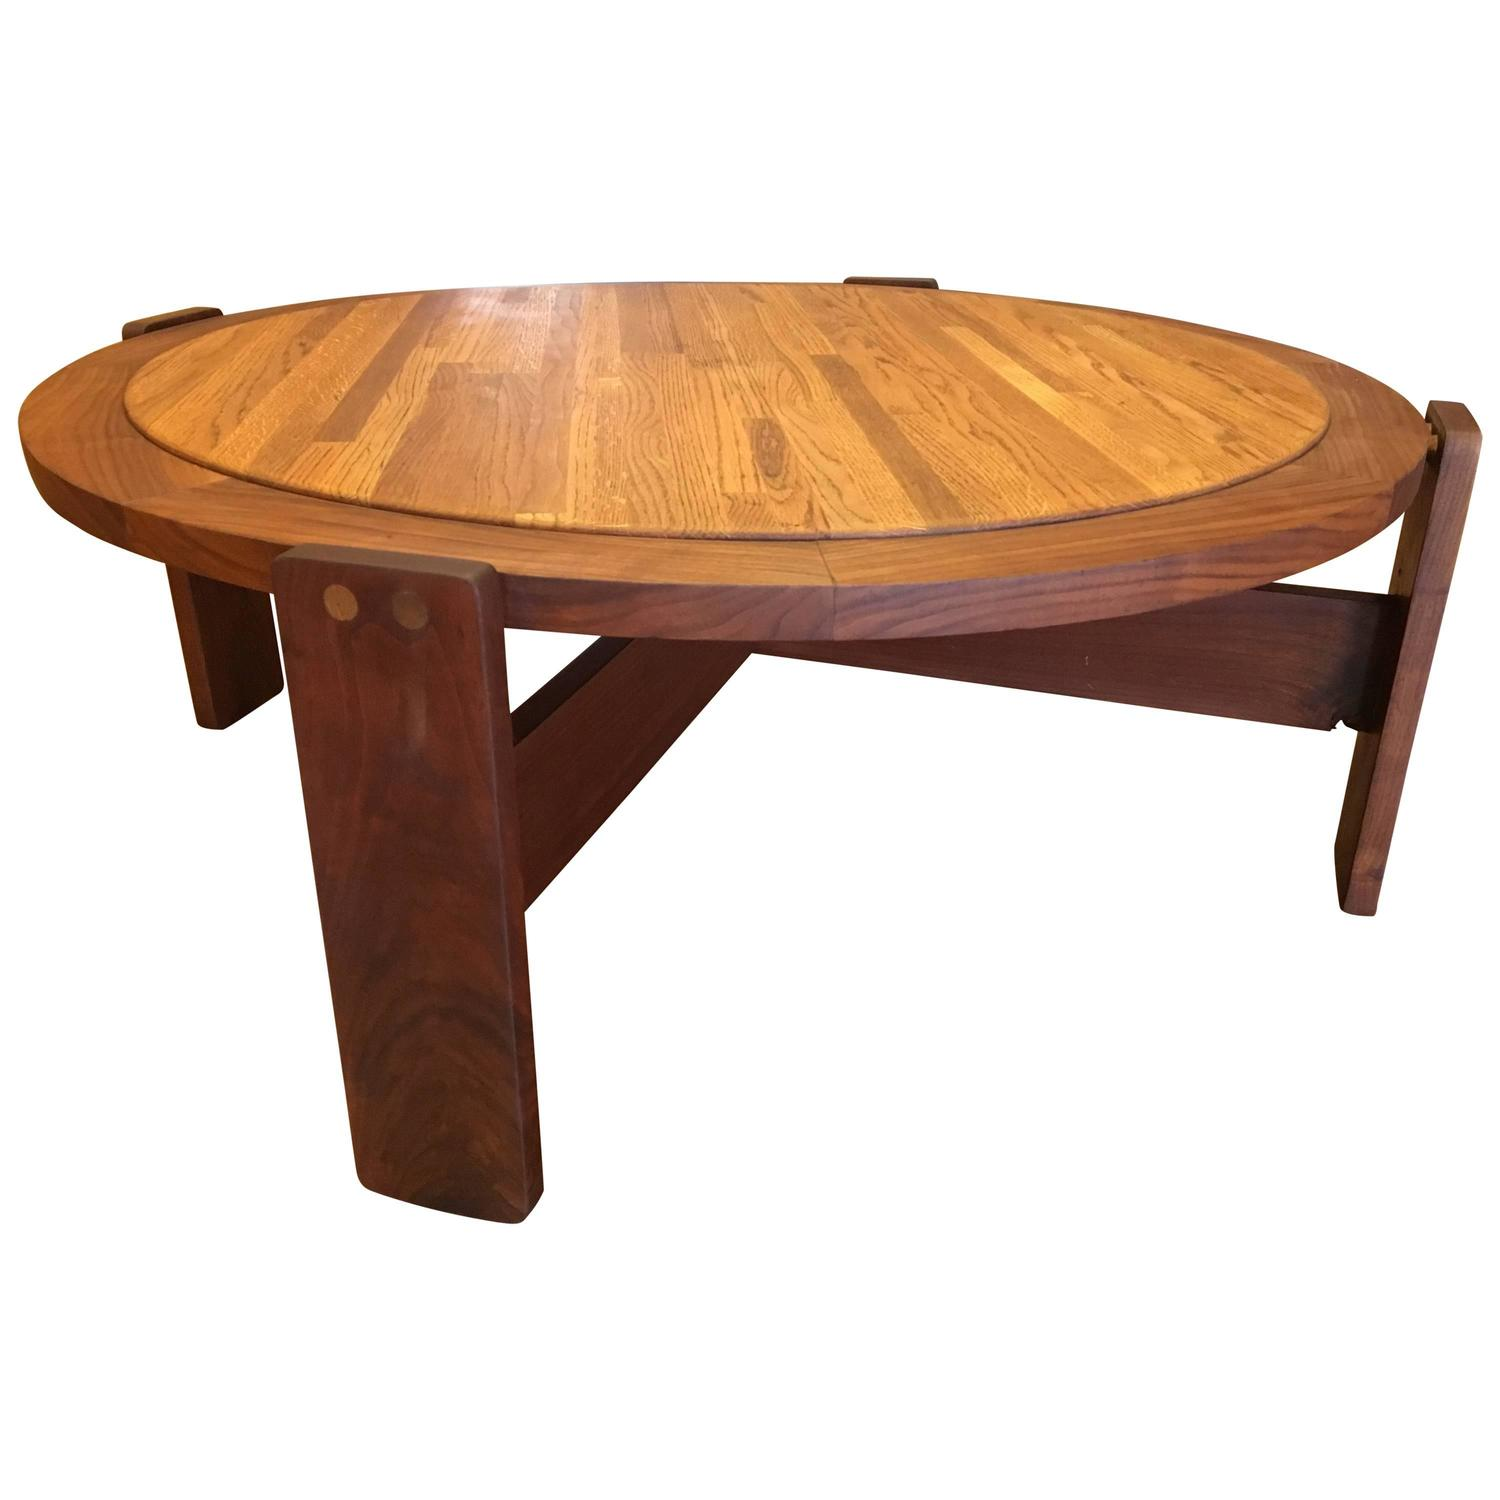 Massive Coffee Table by Lou Hodges California Design Walnut